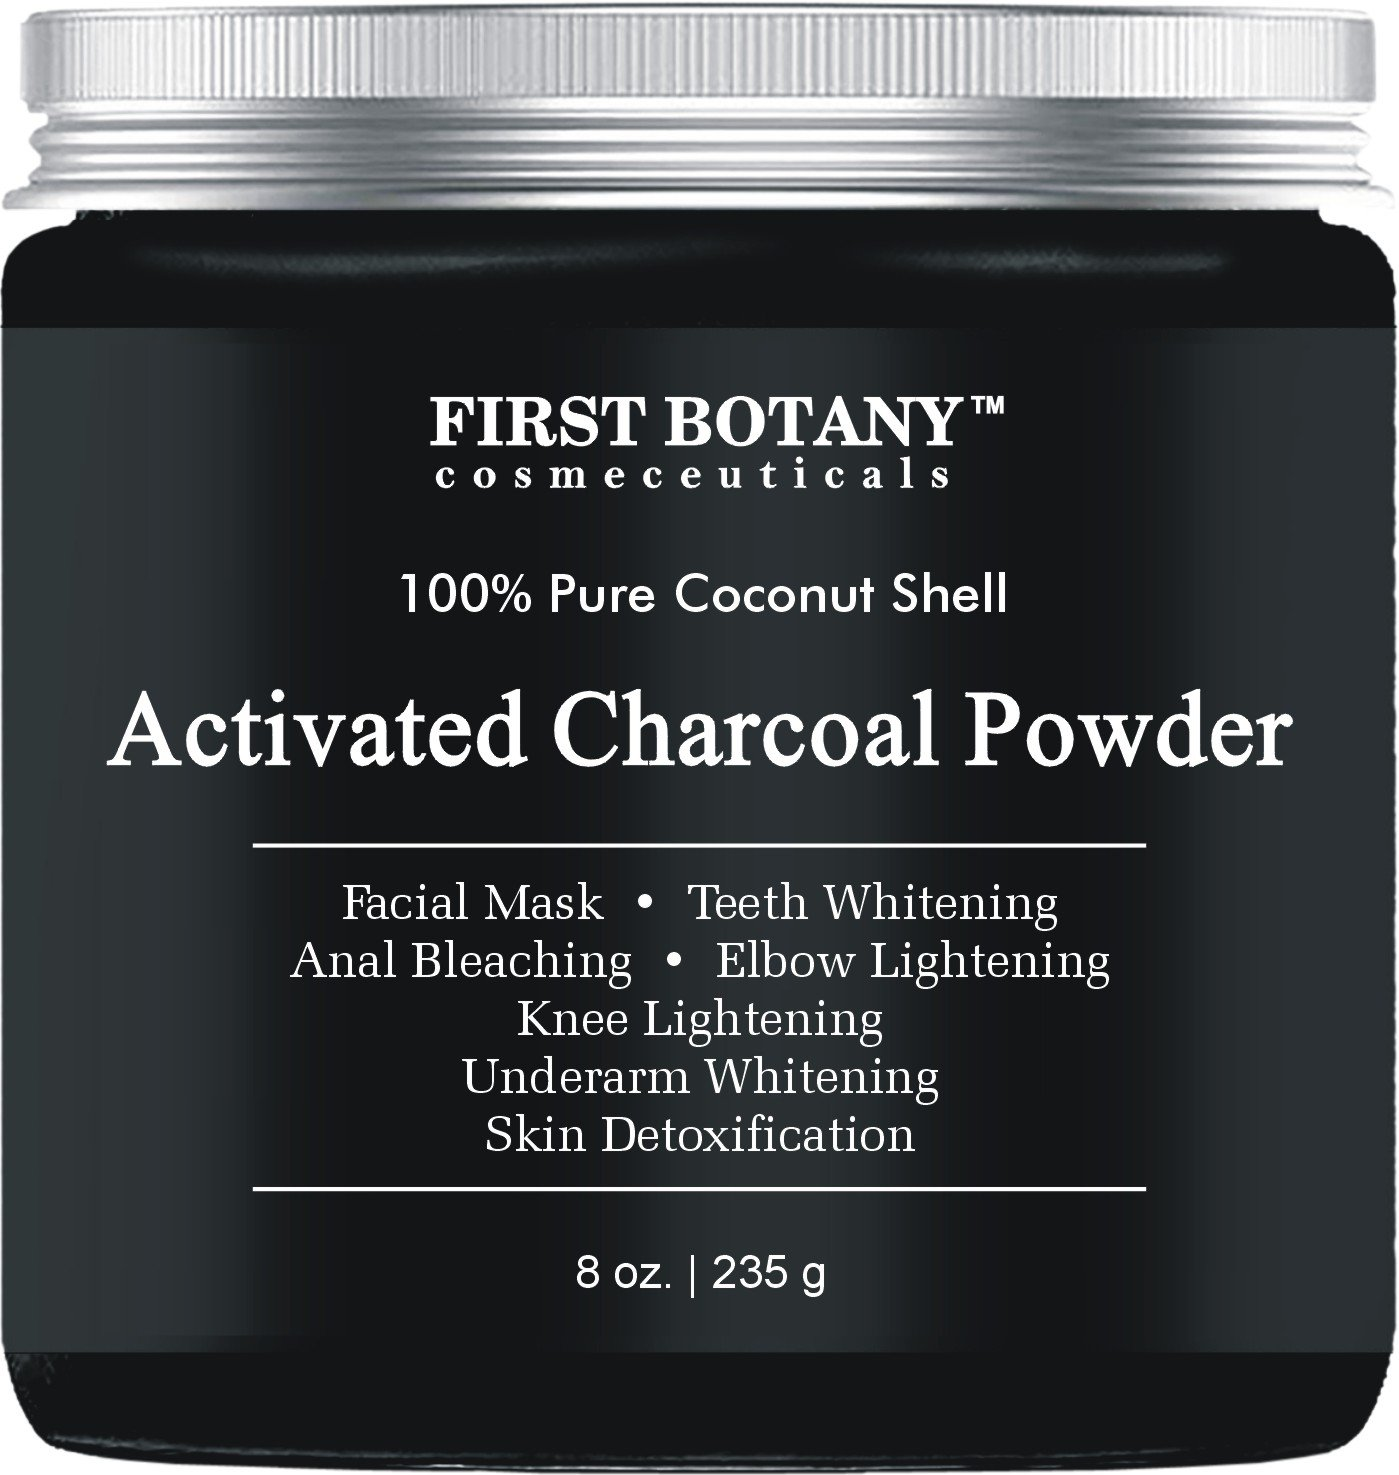 Activated Charcoal Powder 8 oz for DIY Recipes - Teeth Whitening, Facial Masks, Facial Scrubs, Knee Lightening, Underarm Lightening, Homemade Eyeliner &Mascara by First Botany Cosmeceuticals